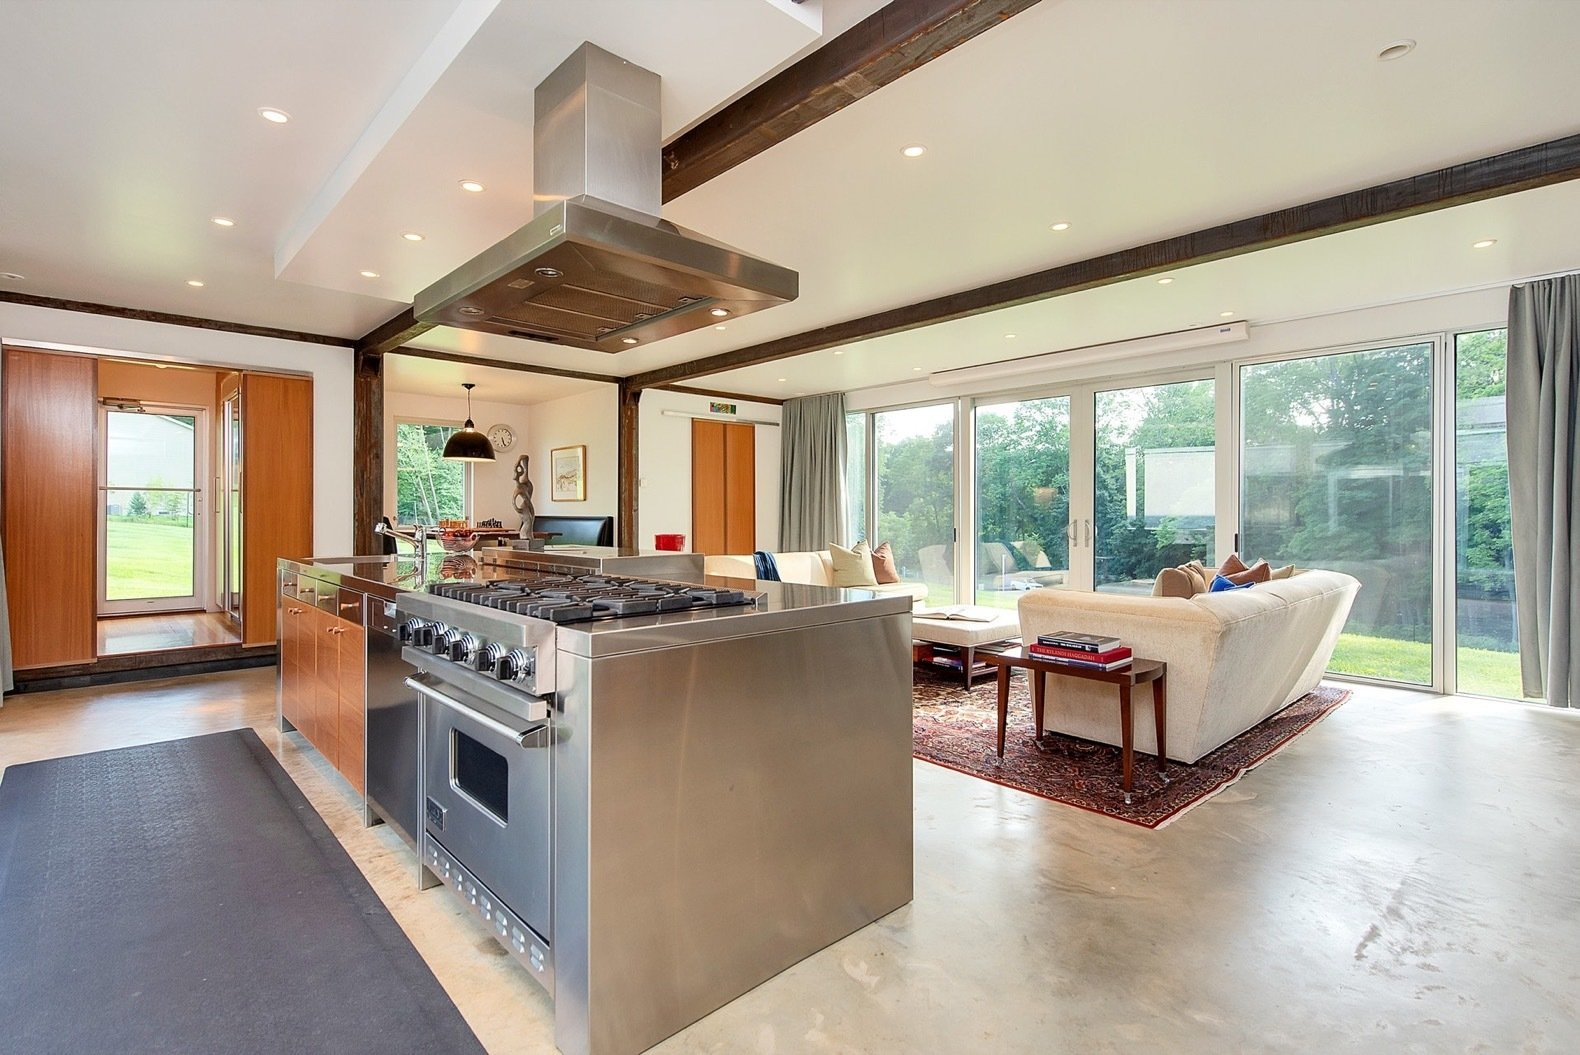 Kitchen, Concrete, Metal, Range Hood, Wall Oven, Cooktops, Range, Wood, and Recessed The 12-foot-long kitchen island is fitted with a Miele dishwasher, a Viking range, and custom wooden cabinets.    Best Kitchen Cooktops Wall Oven Metal Concrete Photos from Grab This Dreamy Shipping Container Home For $875K